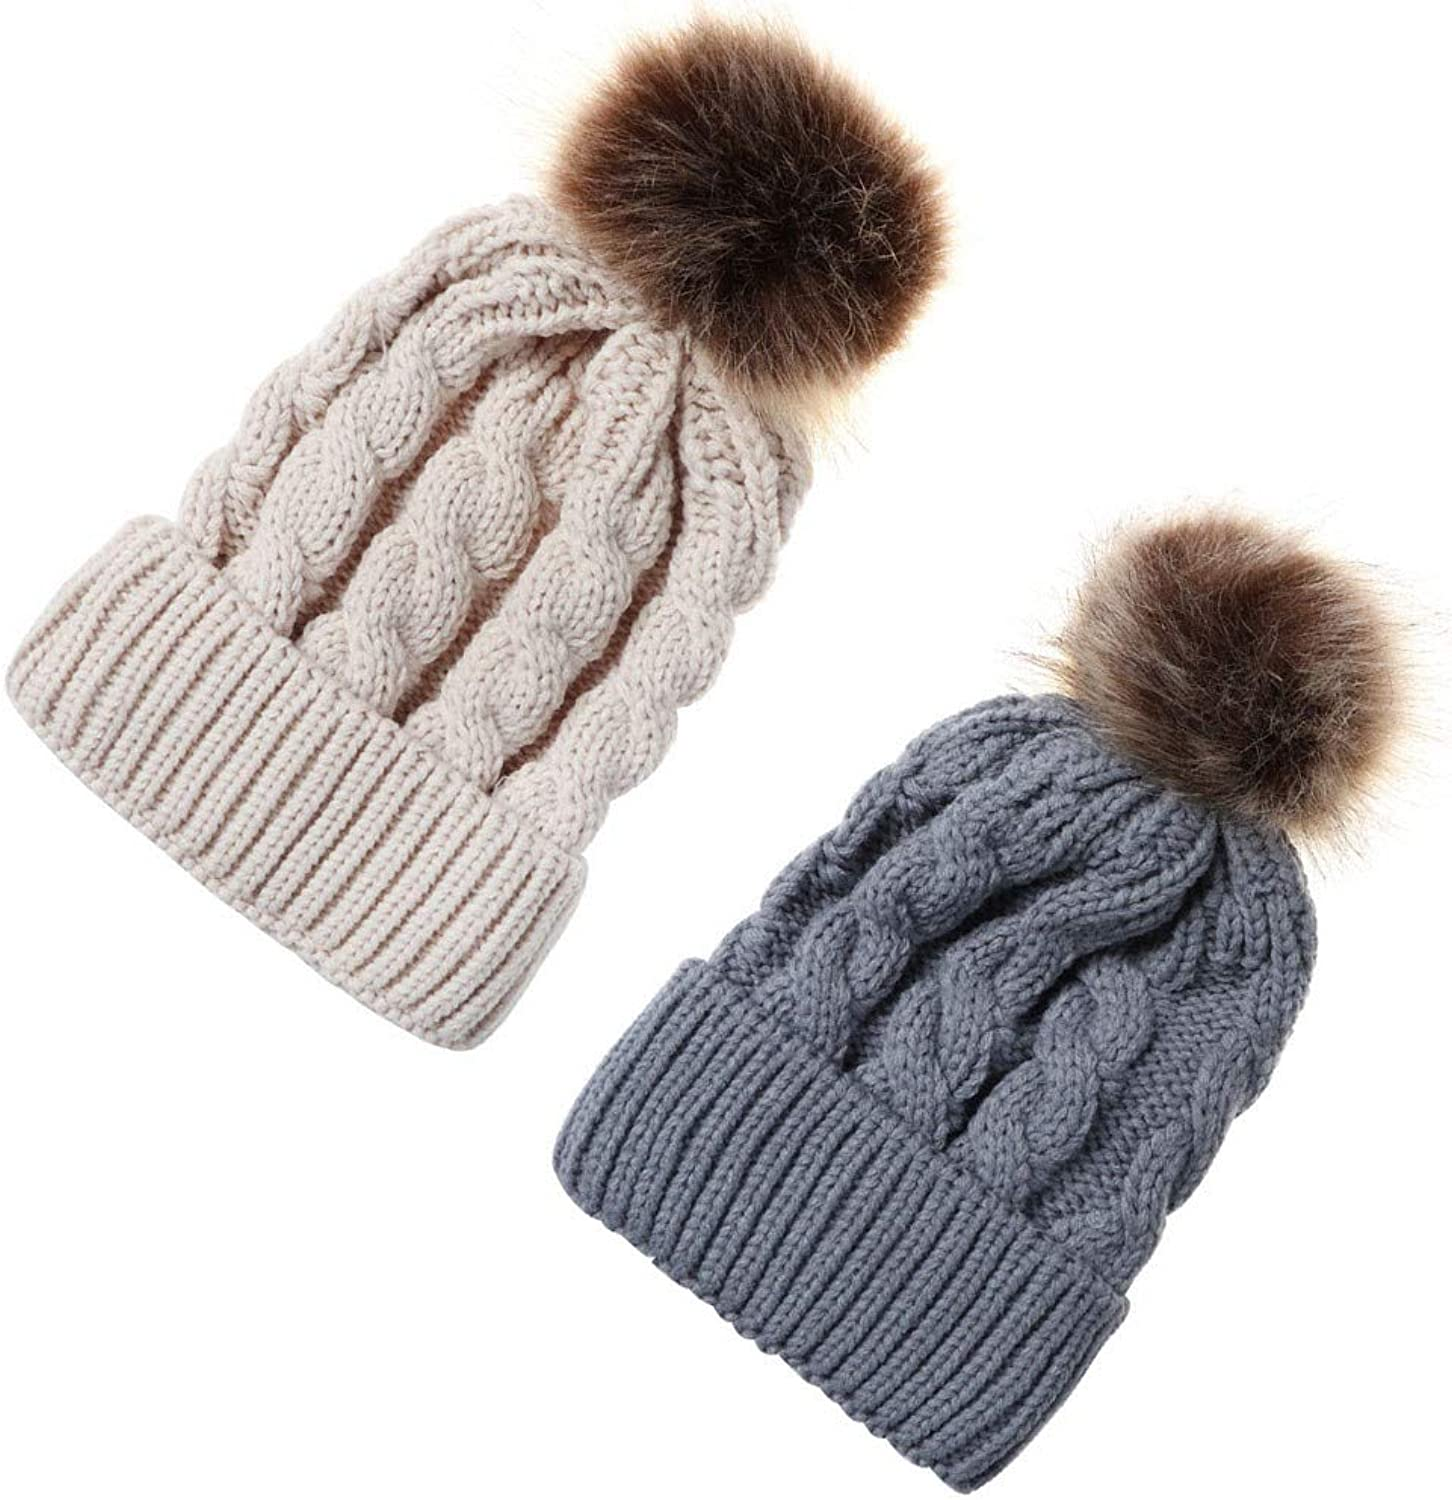 Beauty7 Women Soft Stretch Cuffed Knitted Beanie Cap Faux Fuzzy Fur Pompom Top Chunky Slouchy Hat Skull Cap Winter Fall